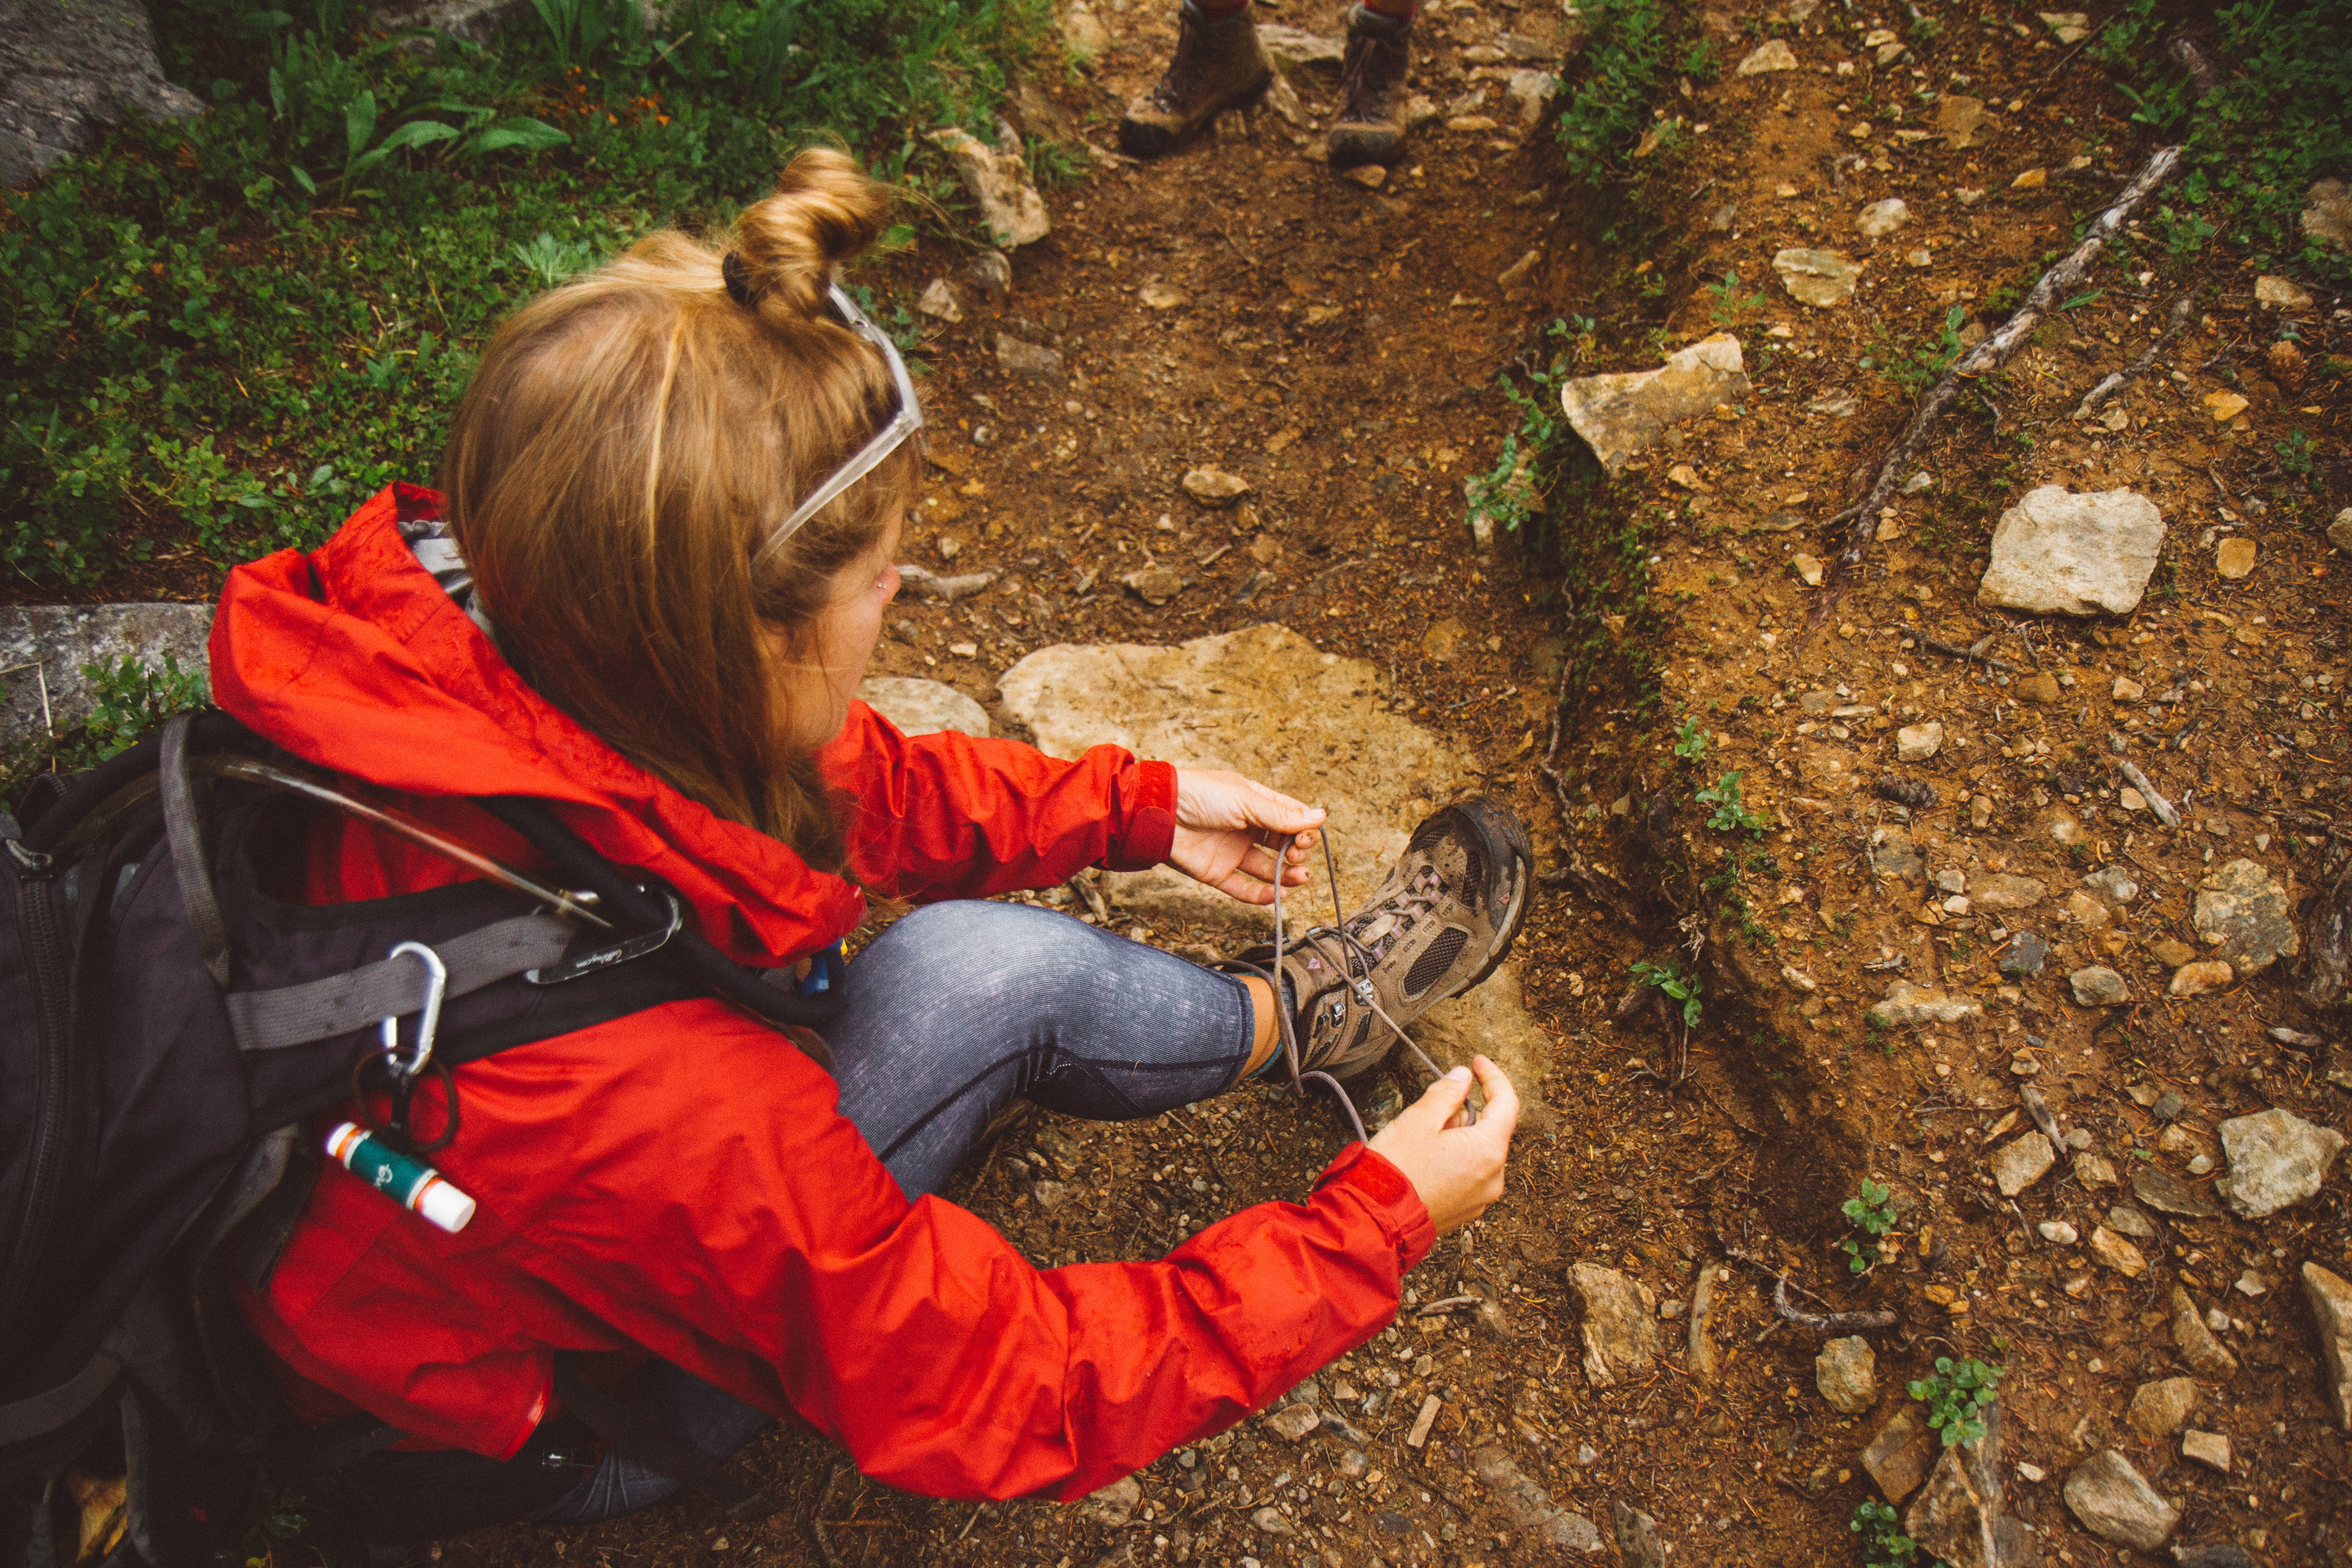 A woman in a backpack and jacket sits on dirt and rocks tying her hiking boots